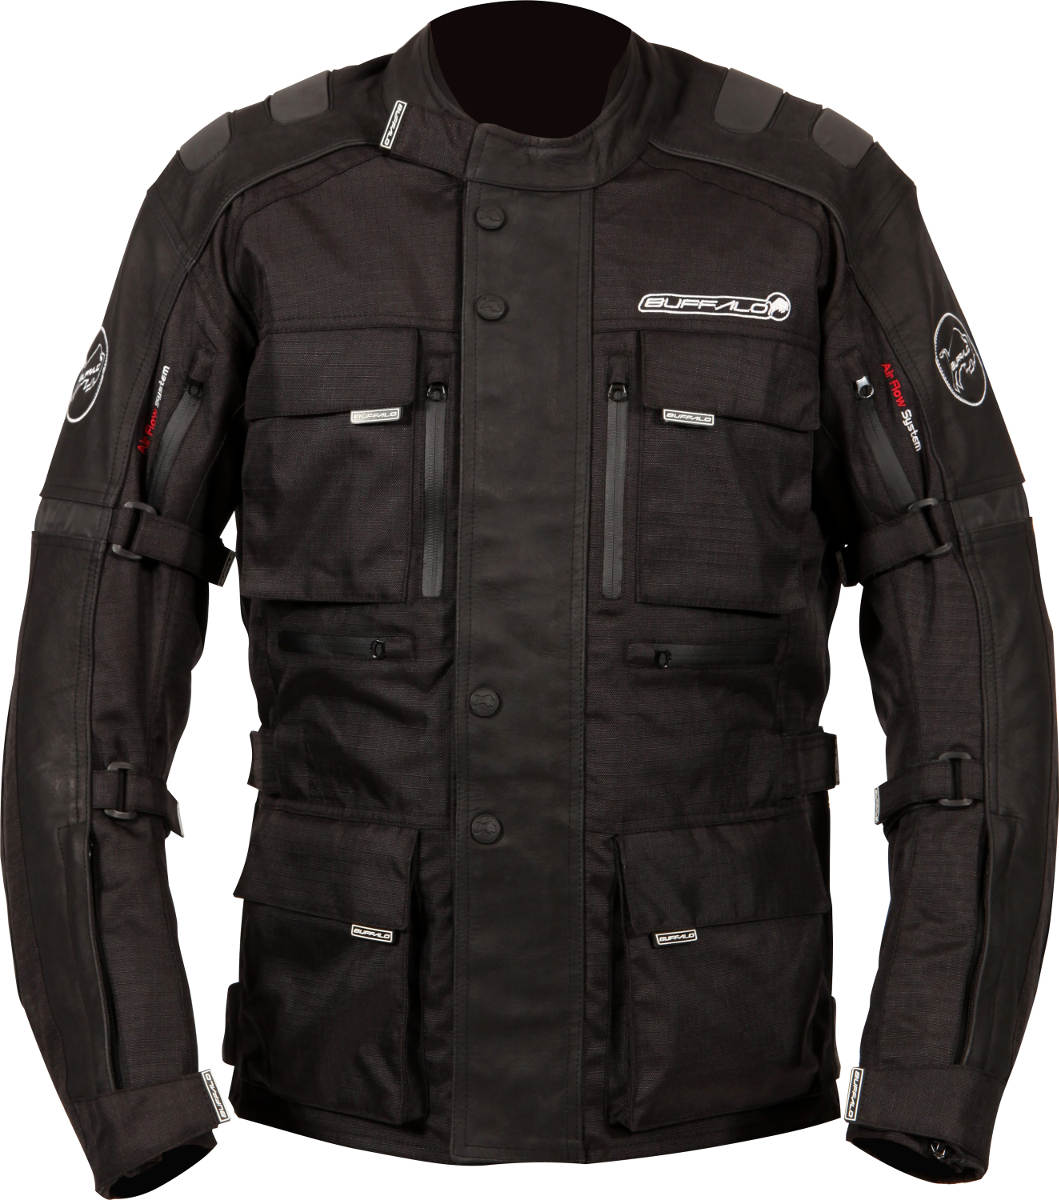 2017 New Buffalo Explorer Jacket Front